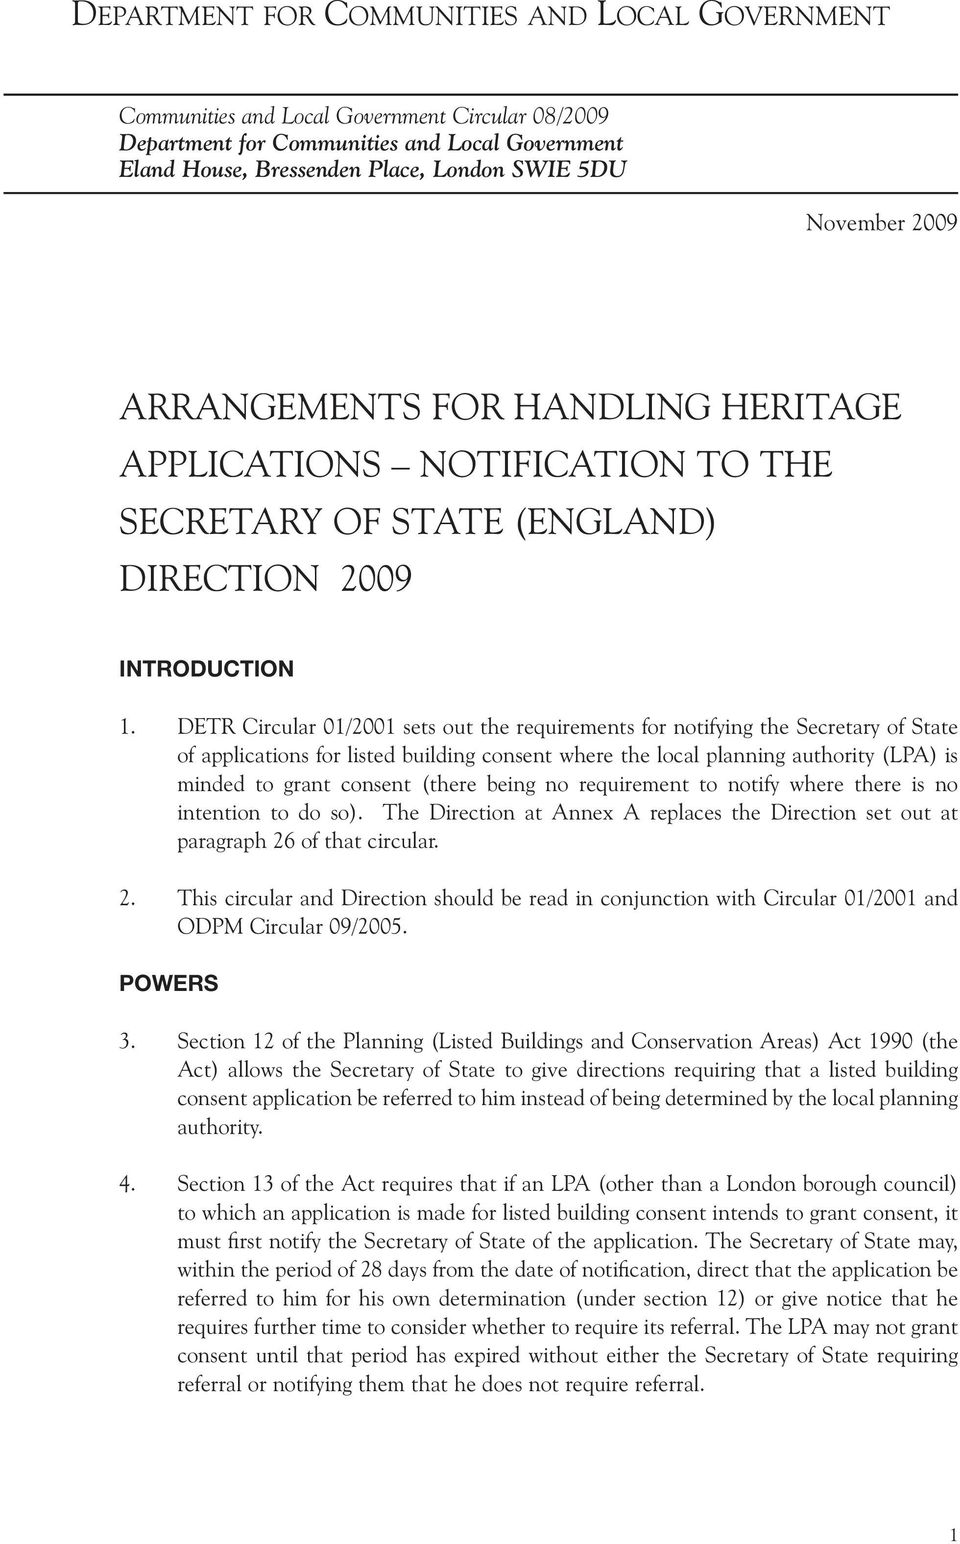 DETR Circular 01/2001 sets out the requirements for notifying the Secretary of State of applications for listed building consent where the local planning authority (LPA) is minded to grant consent